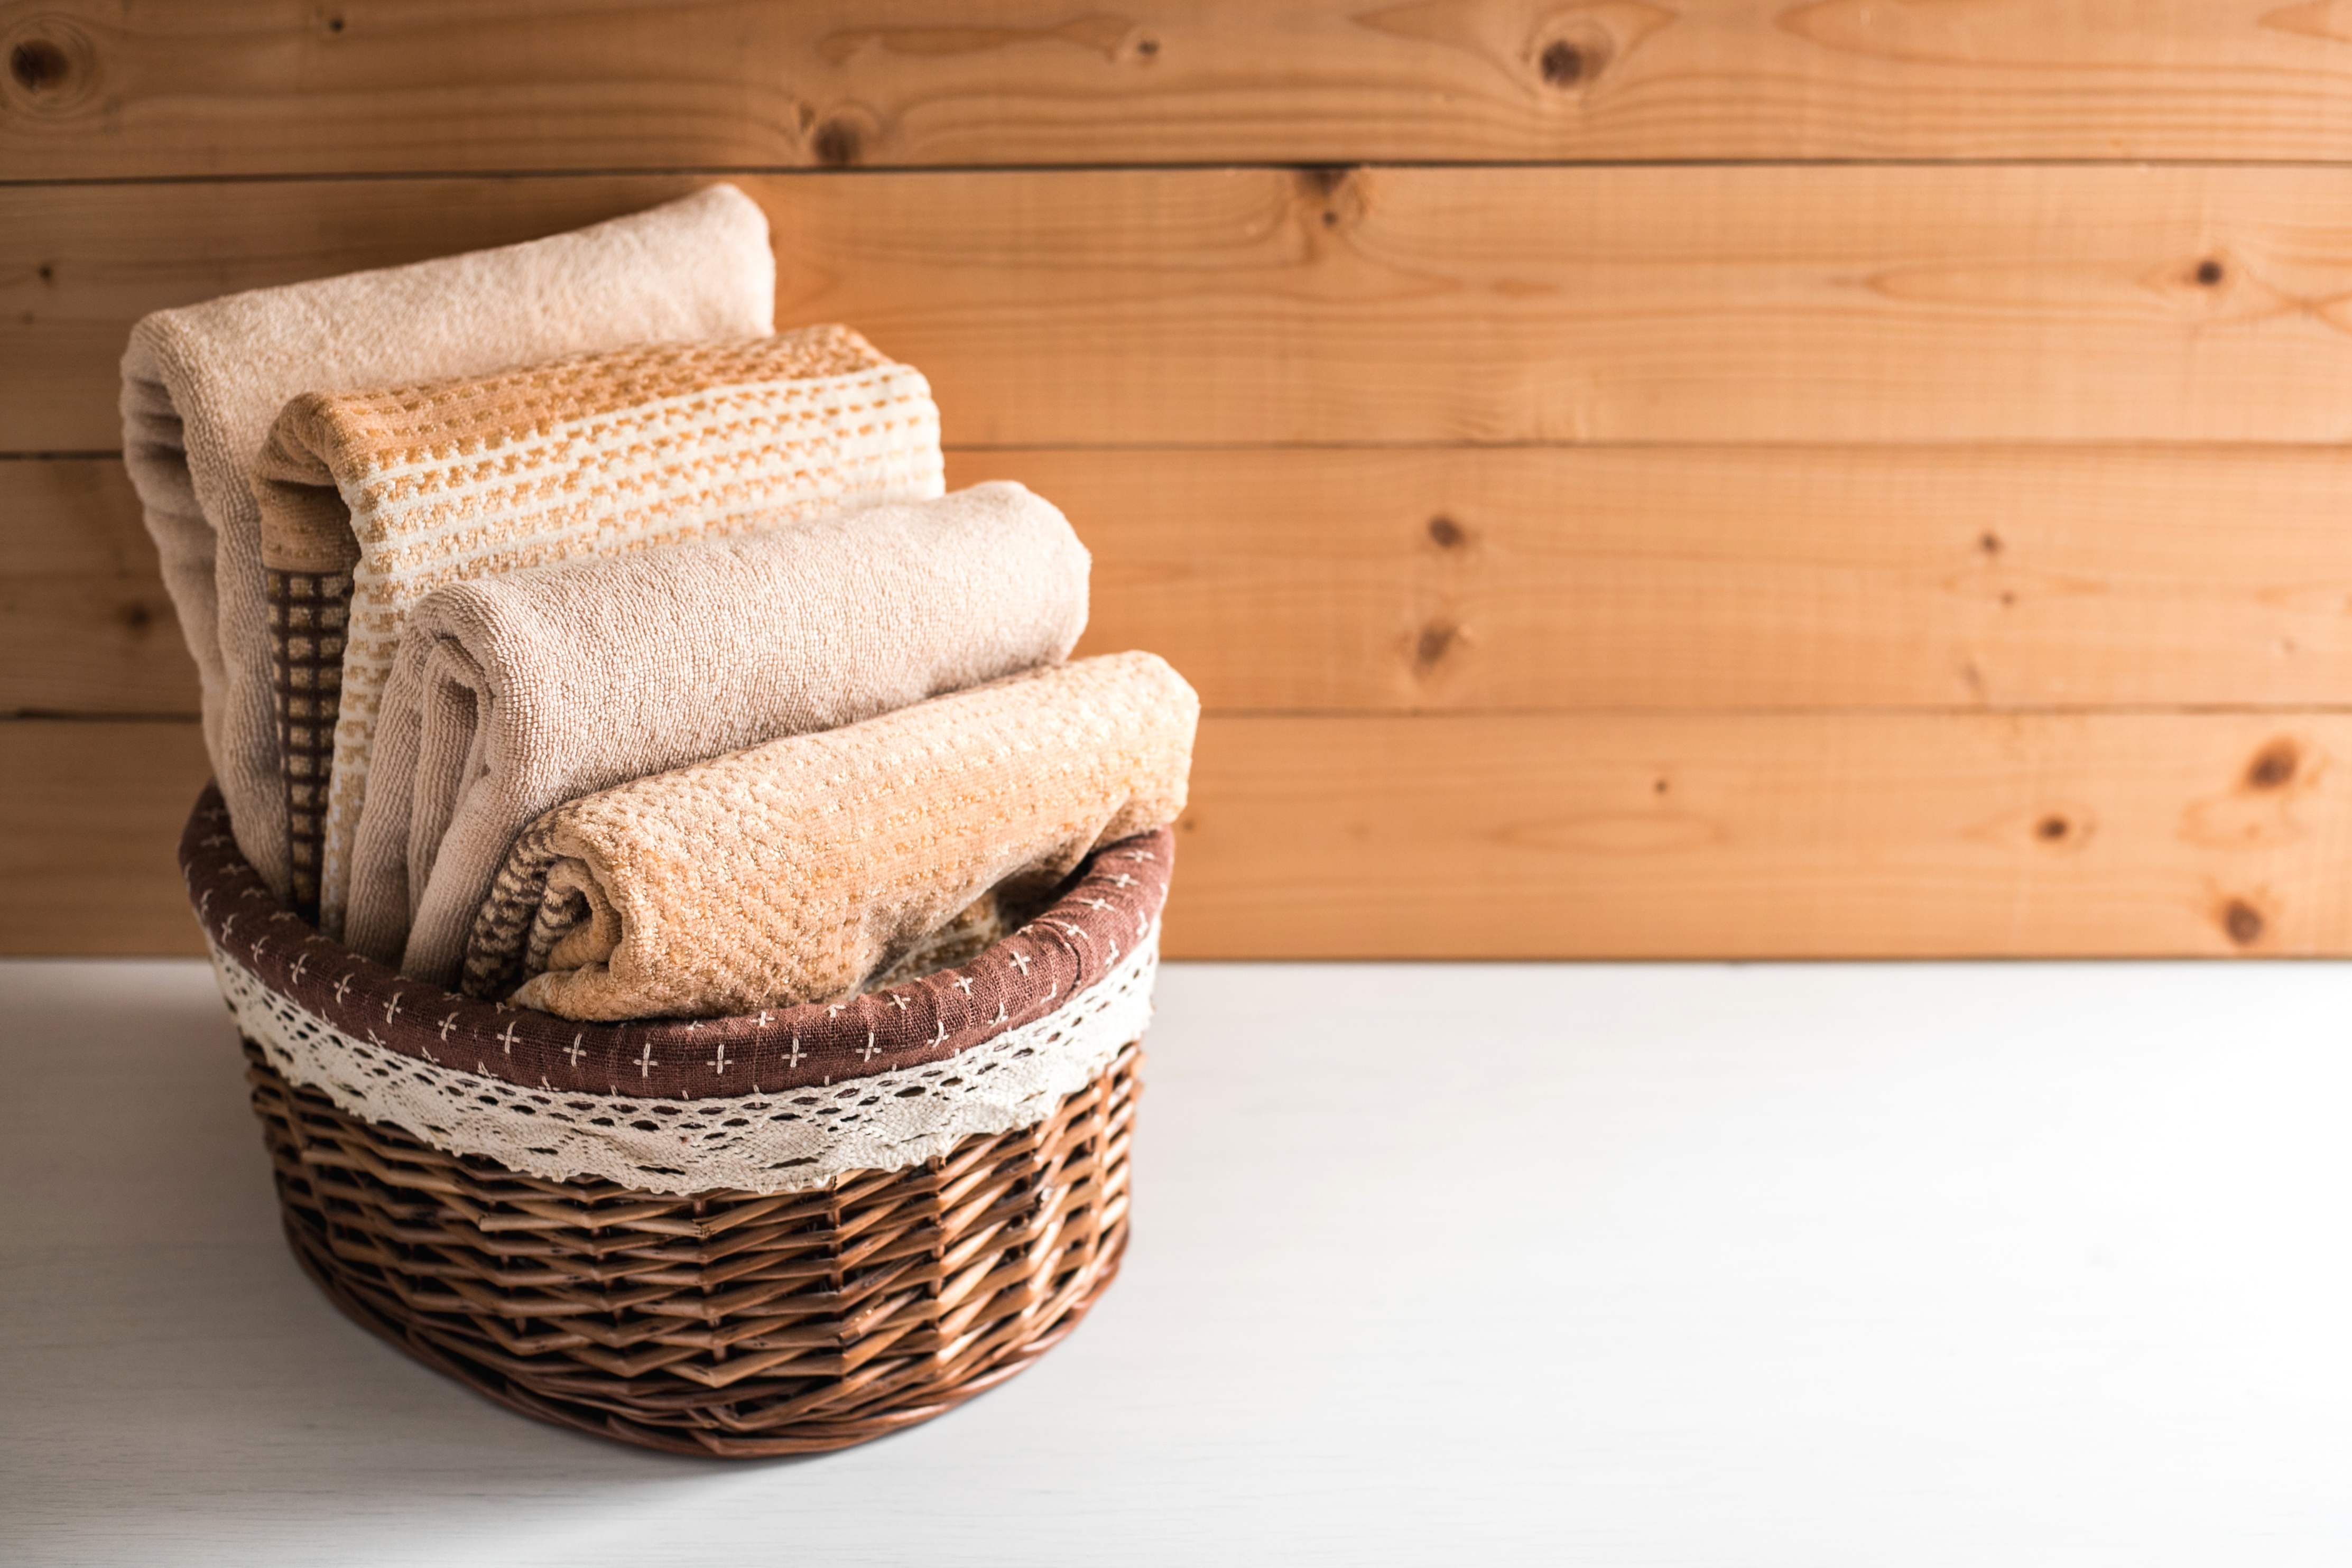 Small Bathroom Decorating Ideas - Basket of towels